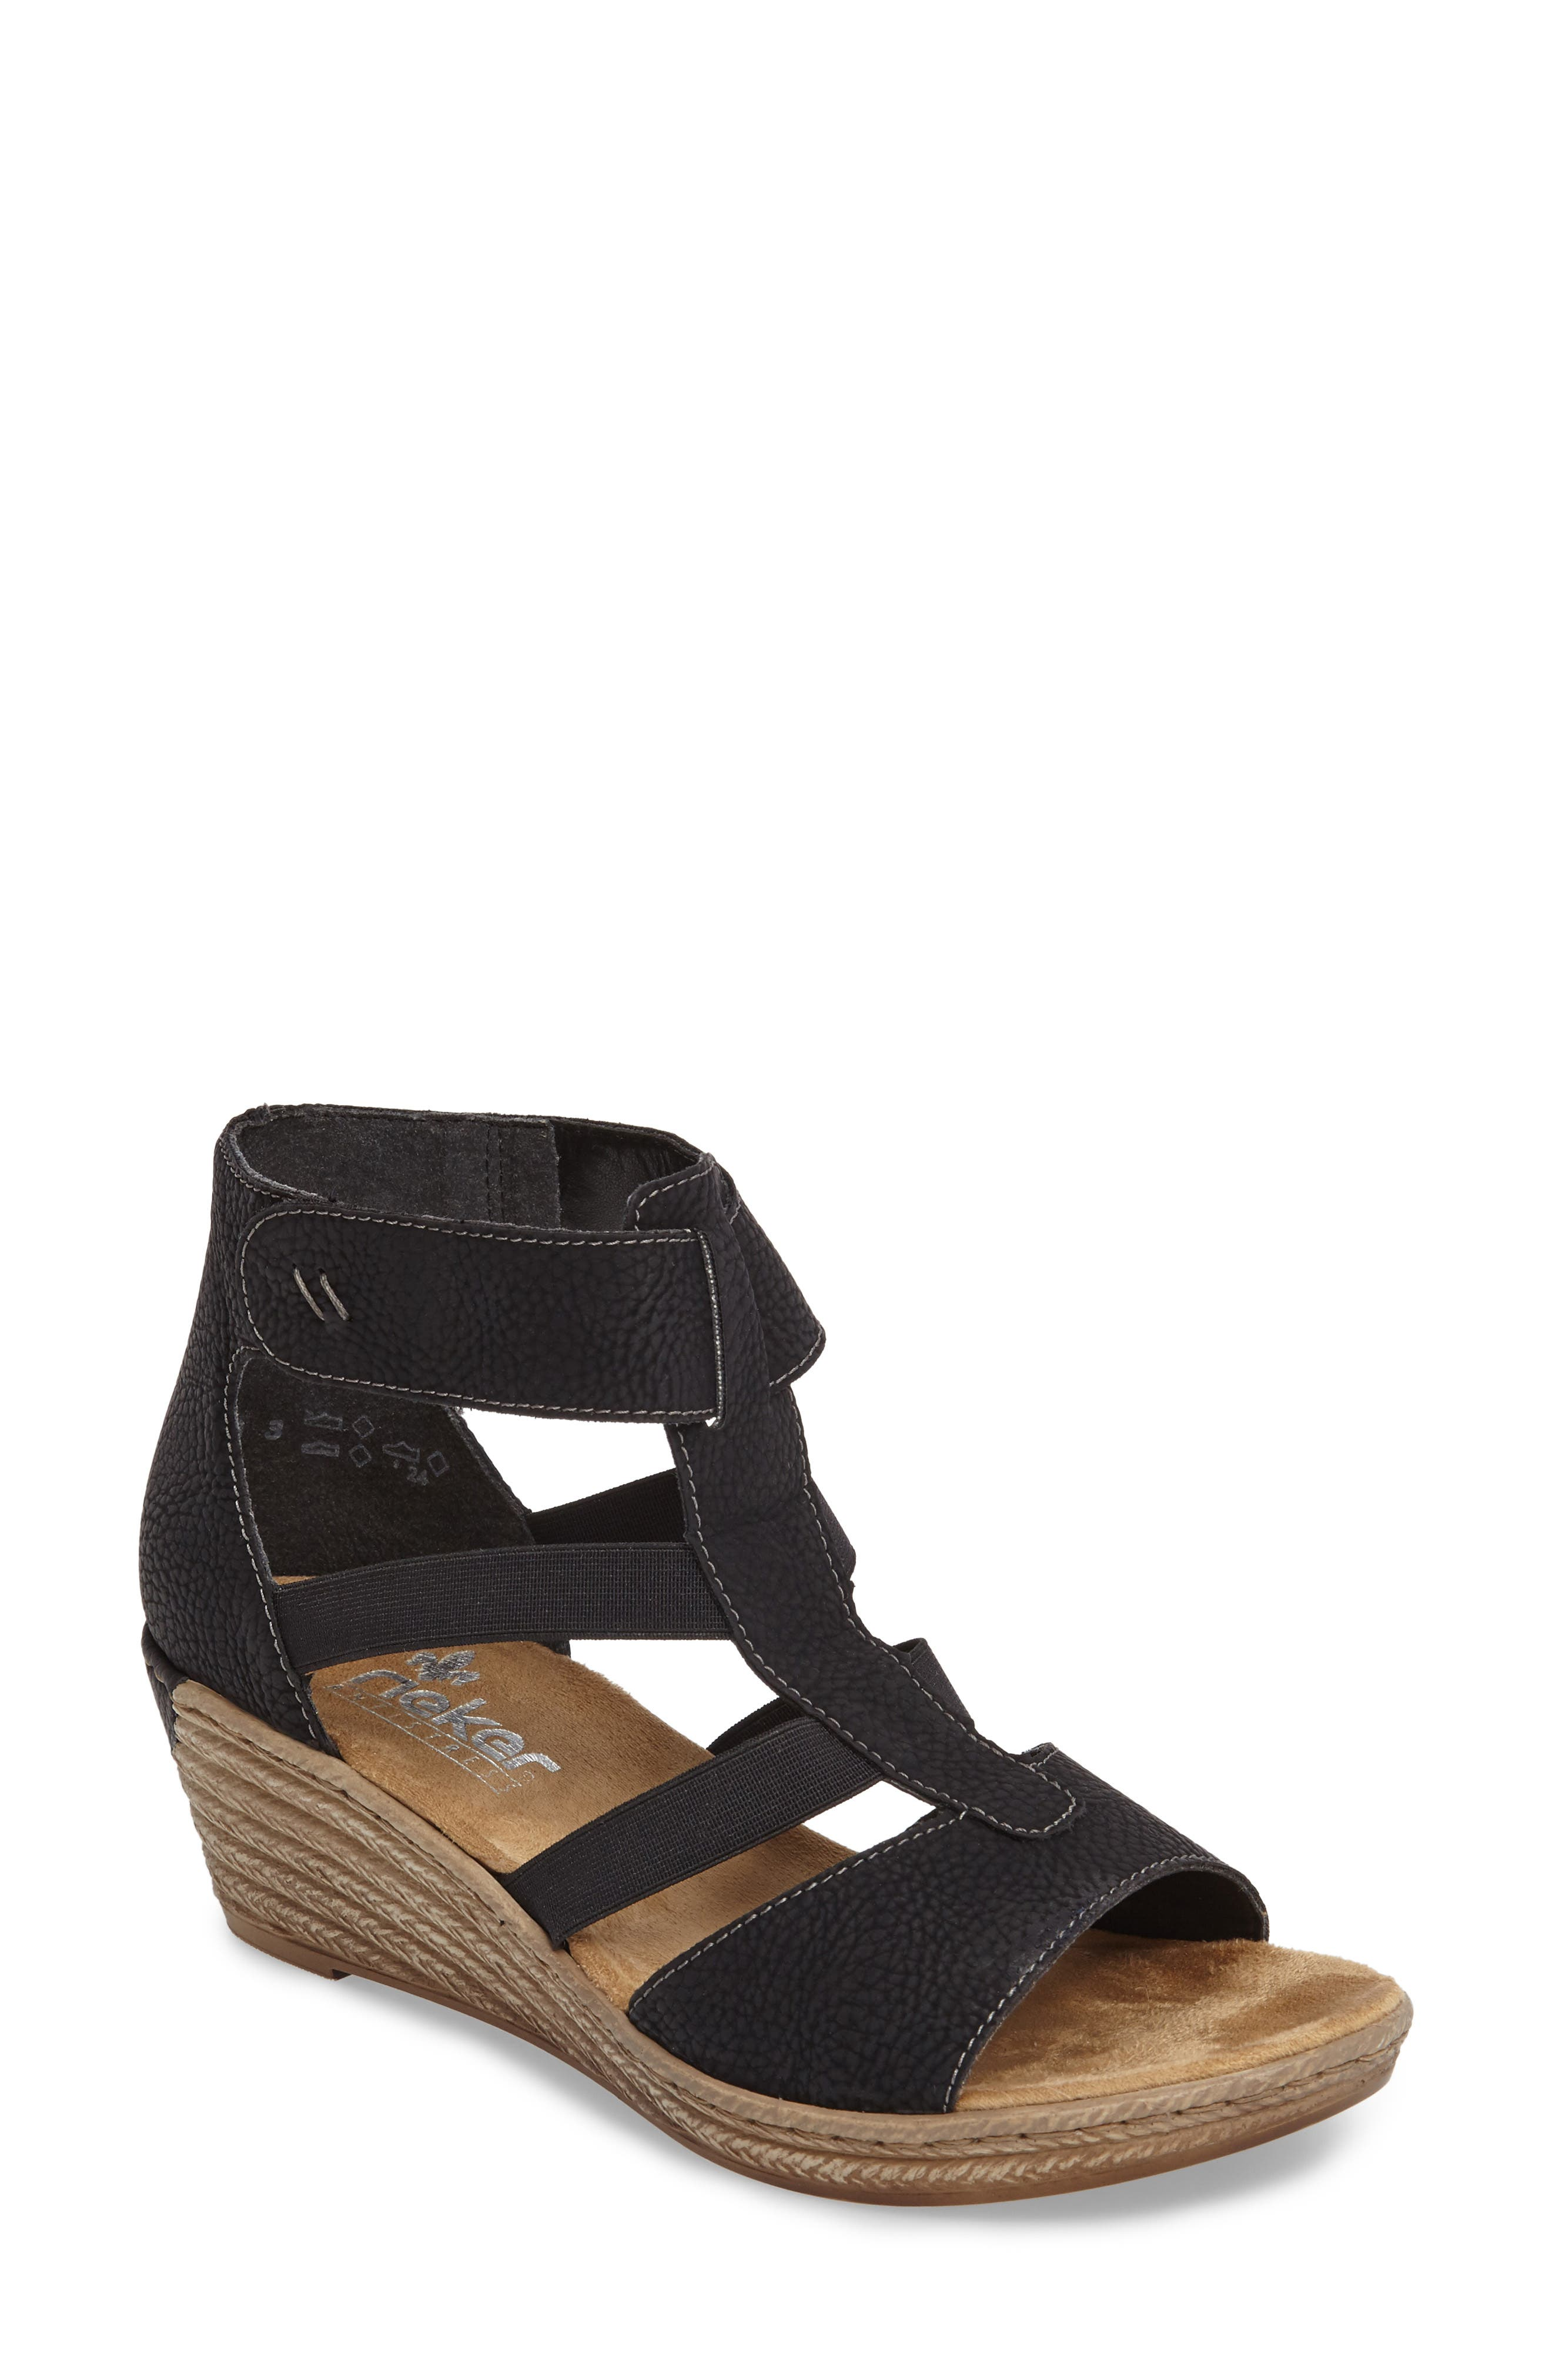 Alternate Image 1 Selected - Rieker Antistress Fanni 39 Wedge Sandal (Women)